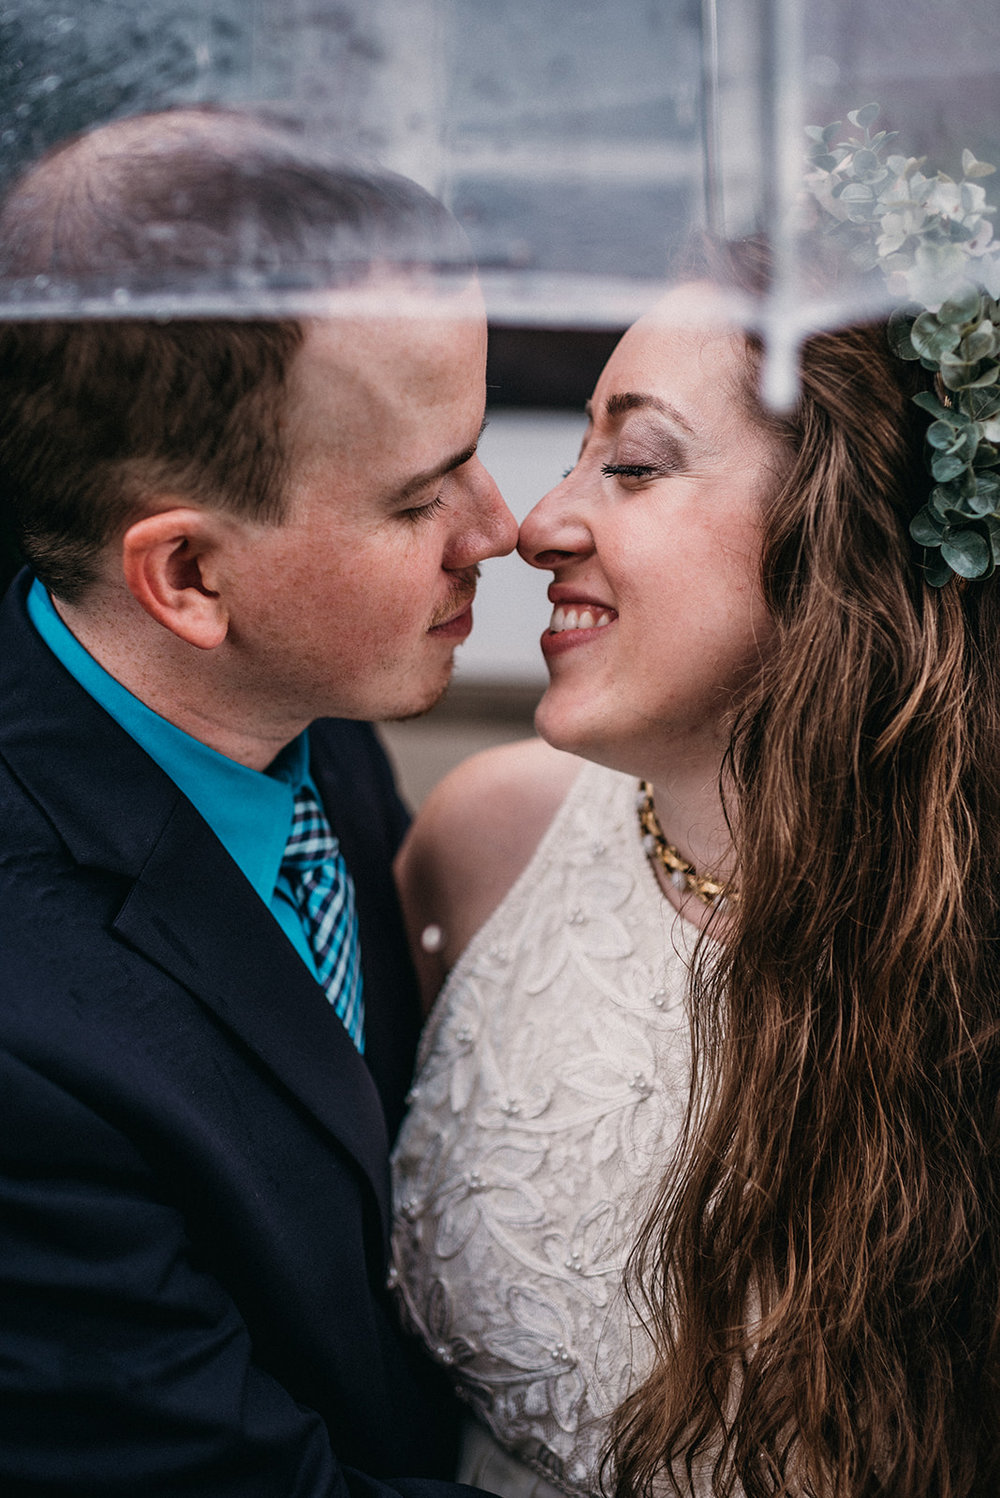 [image description: a photo of my husband and I in our wedding attire. We're facing one another and smiling with our eyes closed and noses touching. There's a clear umbrella above our heads because it was rainy that day.]